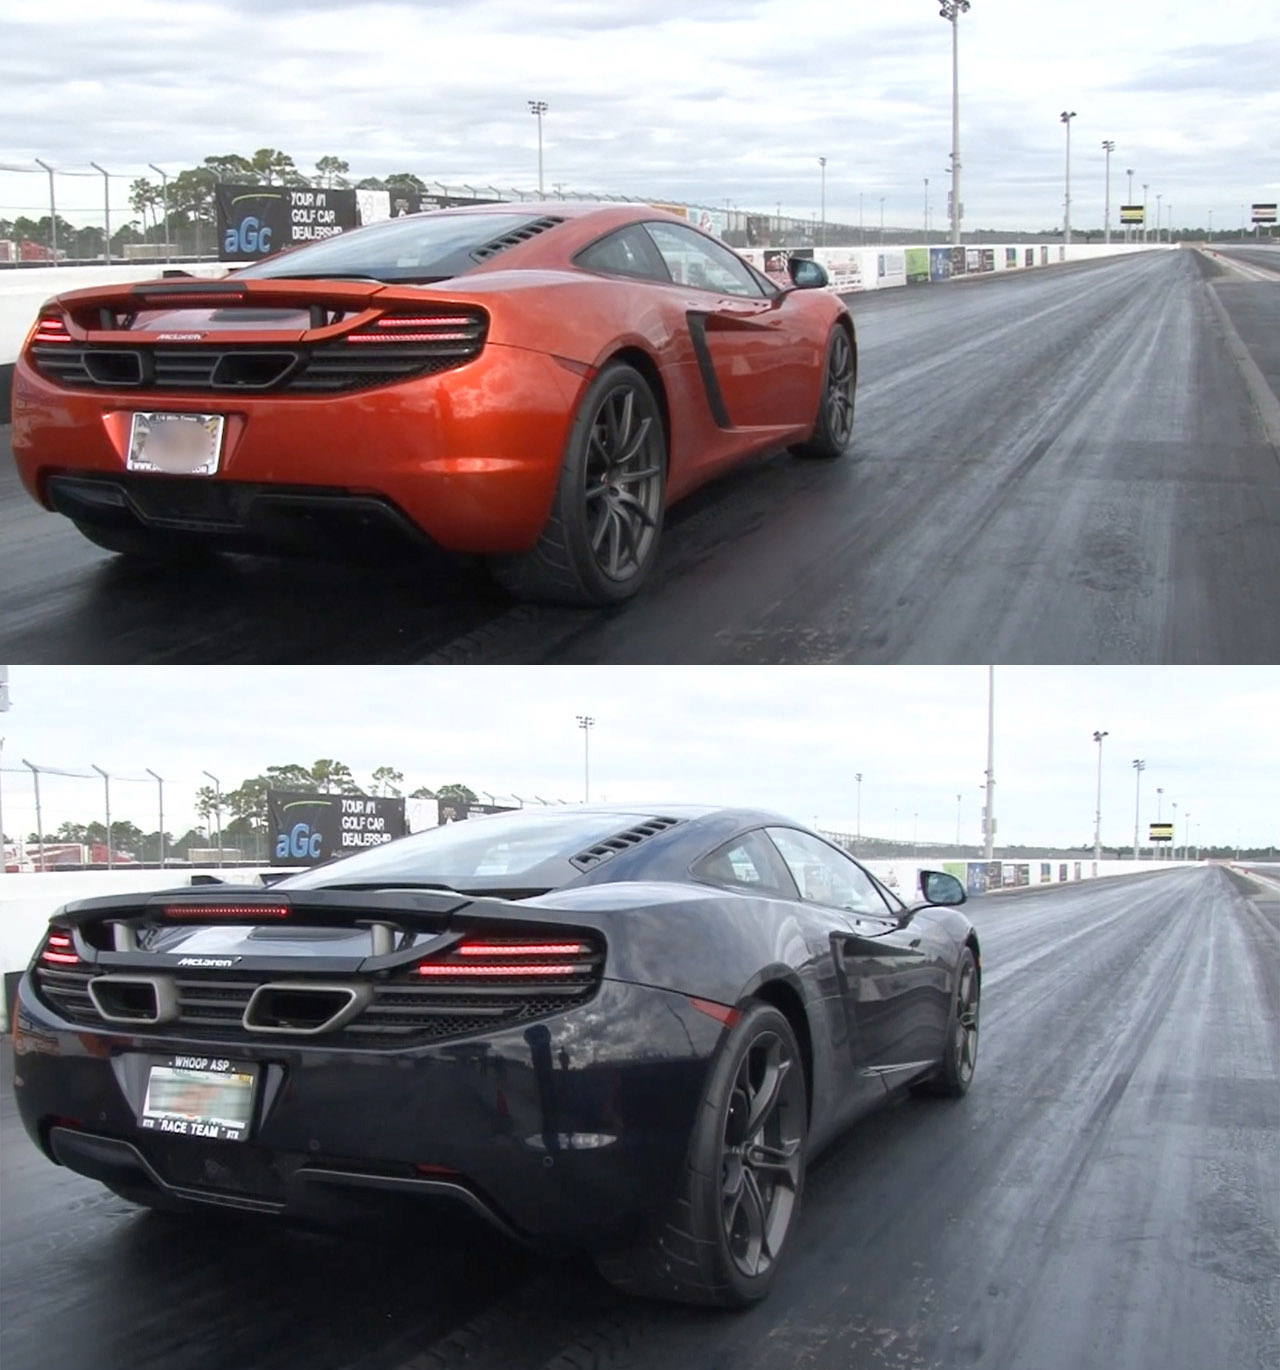 McLaren-MP4-12C-Tune-Review